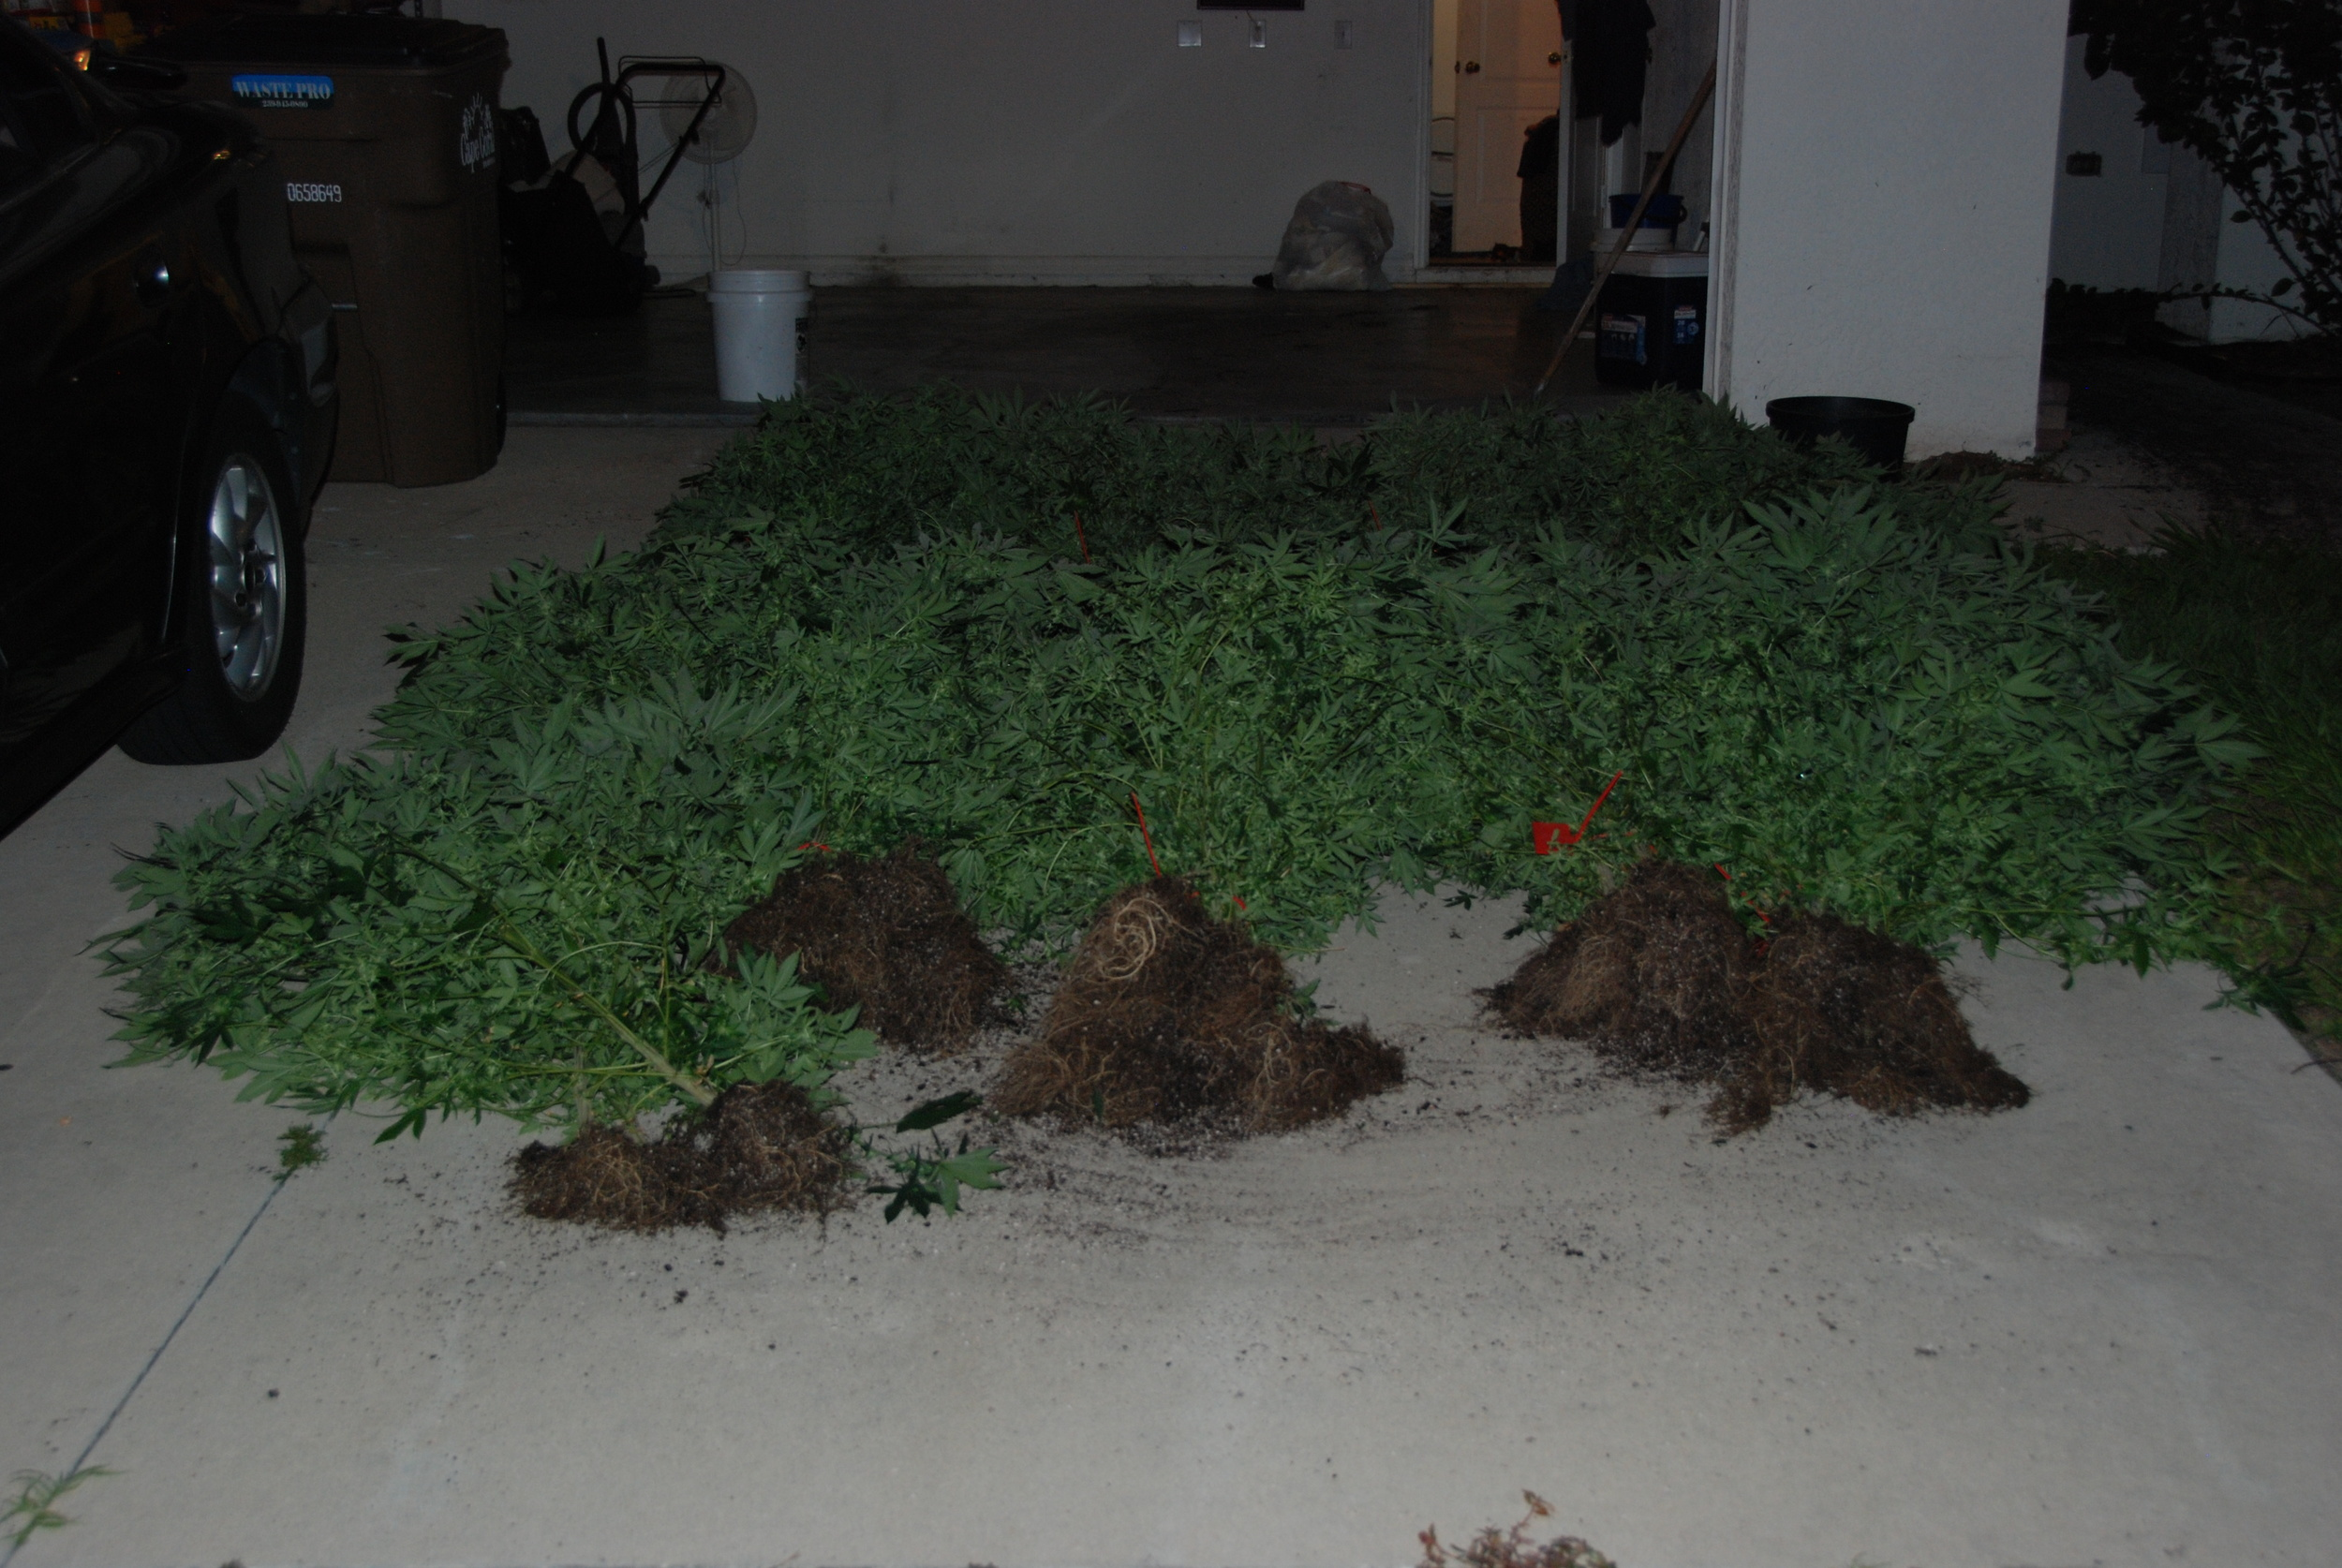 PHOTO: Cape Coral Police Department took down a marijuana grow house operation in NW Cape Coral last night, seizing 151 lbs. of marijuana and arresting two for Cultivation and Trafficking. Pictured here is an exterior view of the home (with numerous pot plants) located at 51 NW 33rd Terrace, Cape Coral. (Photo Courtesy ofCape Coral Police Department)